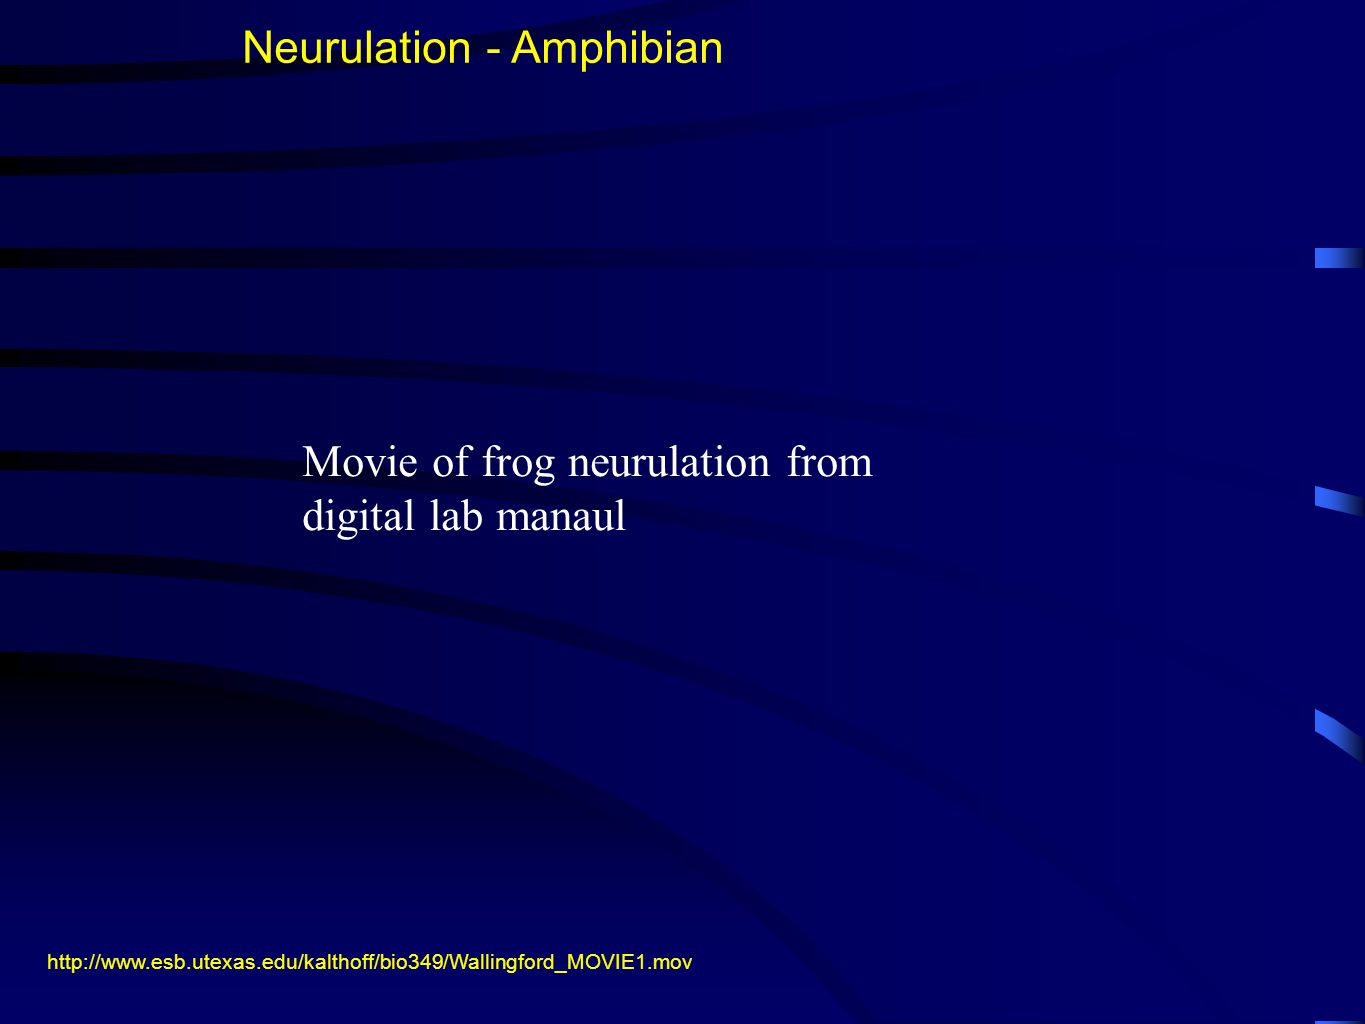 http://www.esb.utexas.edu/kalthoff/bio349/Wallingford_MOVIE1.mov Neurulation - Amphibian Movie of frog neurulation from digital lab manaul